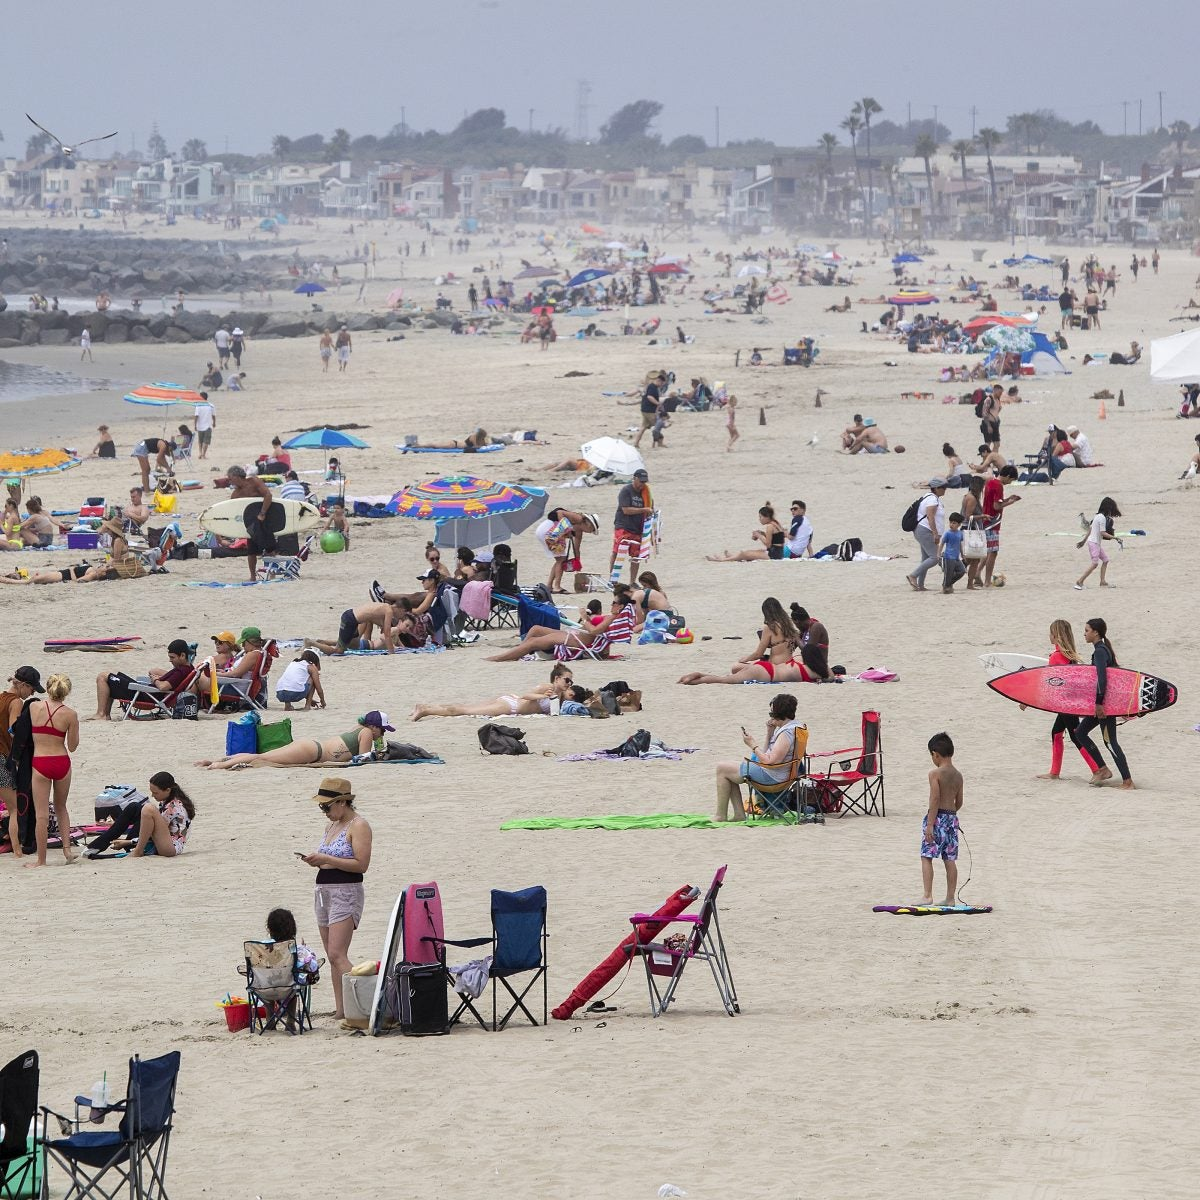 Two Orange County, California, Cities Move To Challenge Governor's Order Closing Beaches